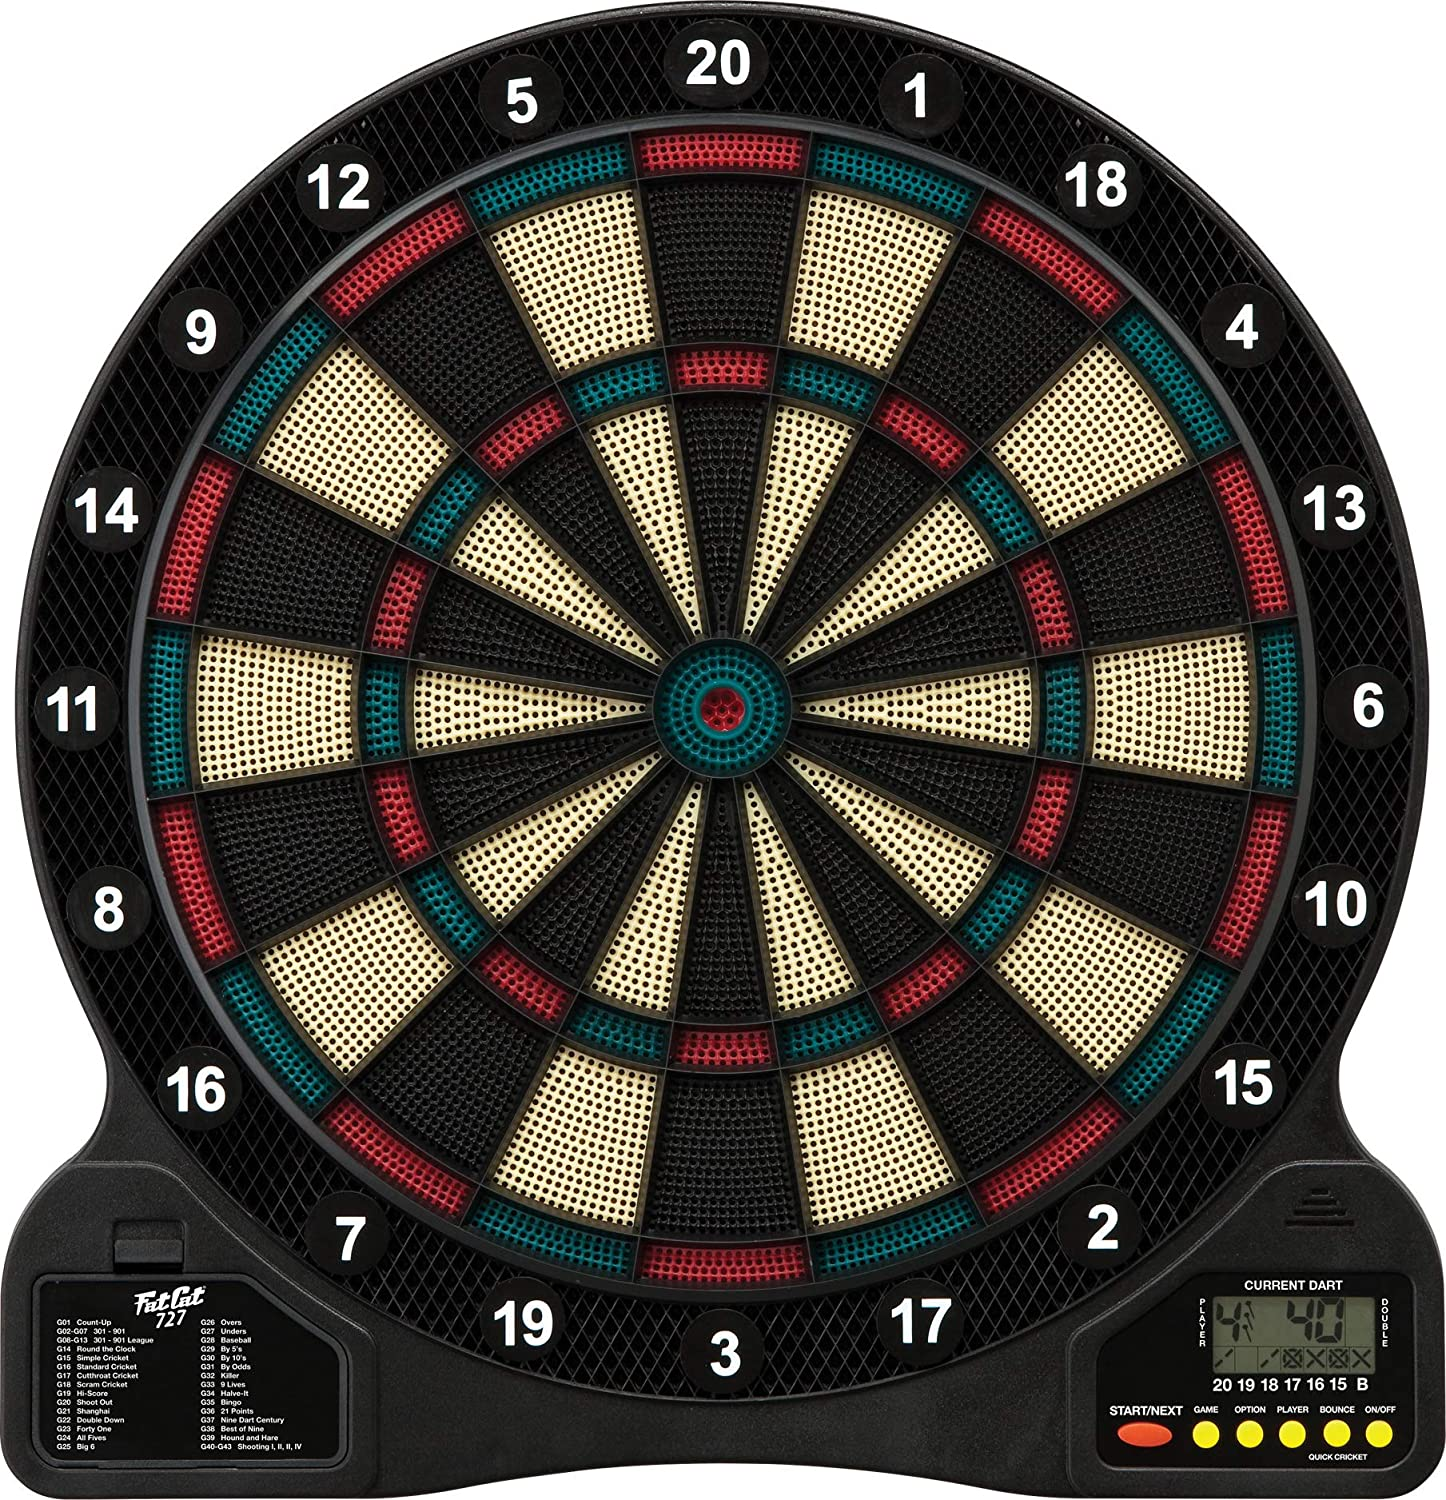 Fat Cat By GLD Products 727 Electronic Dart Board